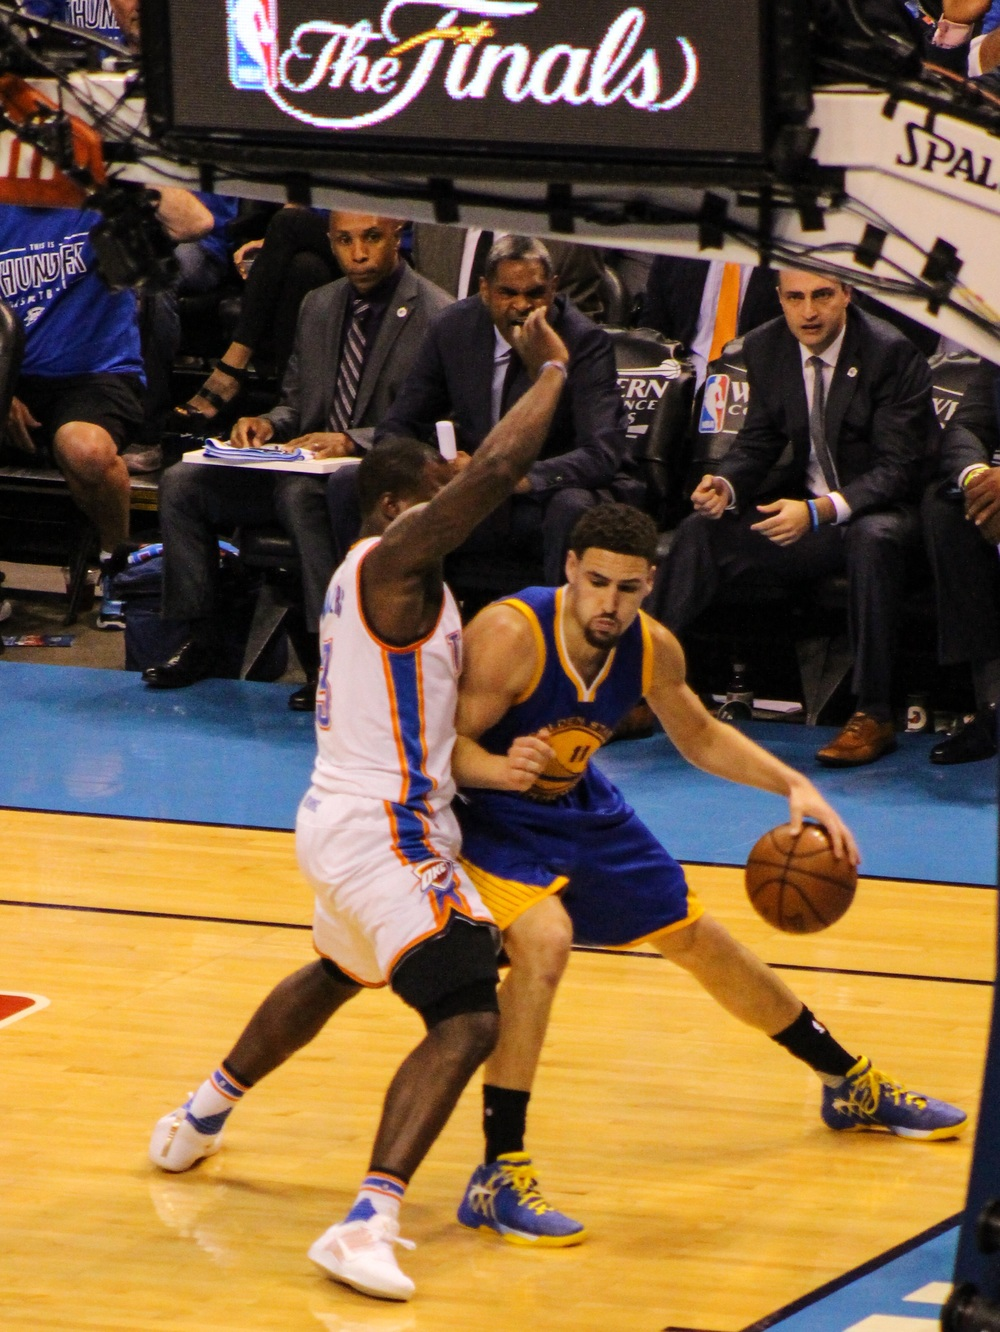 Warriors shooting guard Klay Thompson drives around Thunder guard Dion Waiters in Saturday's 108-101 Golden State win in Game 6 of the Western Conference Finals. (Photo By Sam Murch/InsideThunder.com)